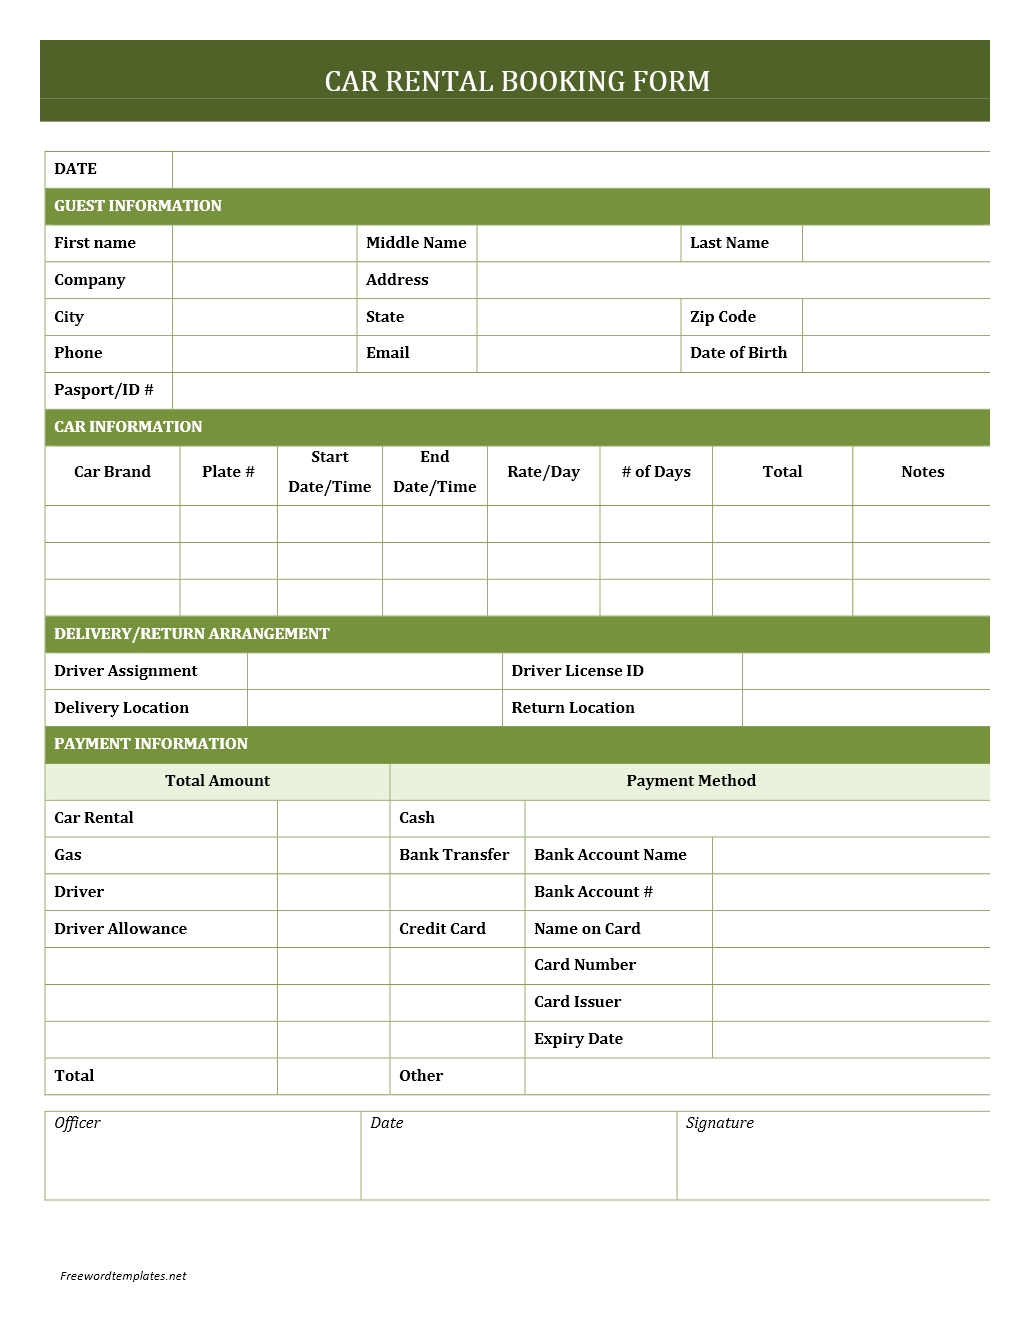 Beautiful hotel booking form template ideas example for Accommodation booking form template